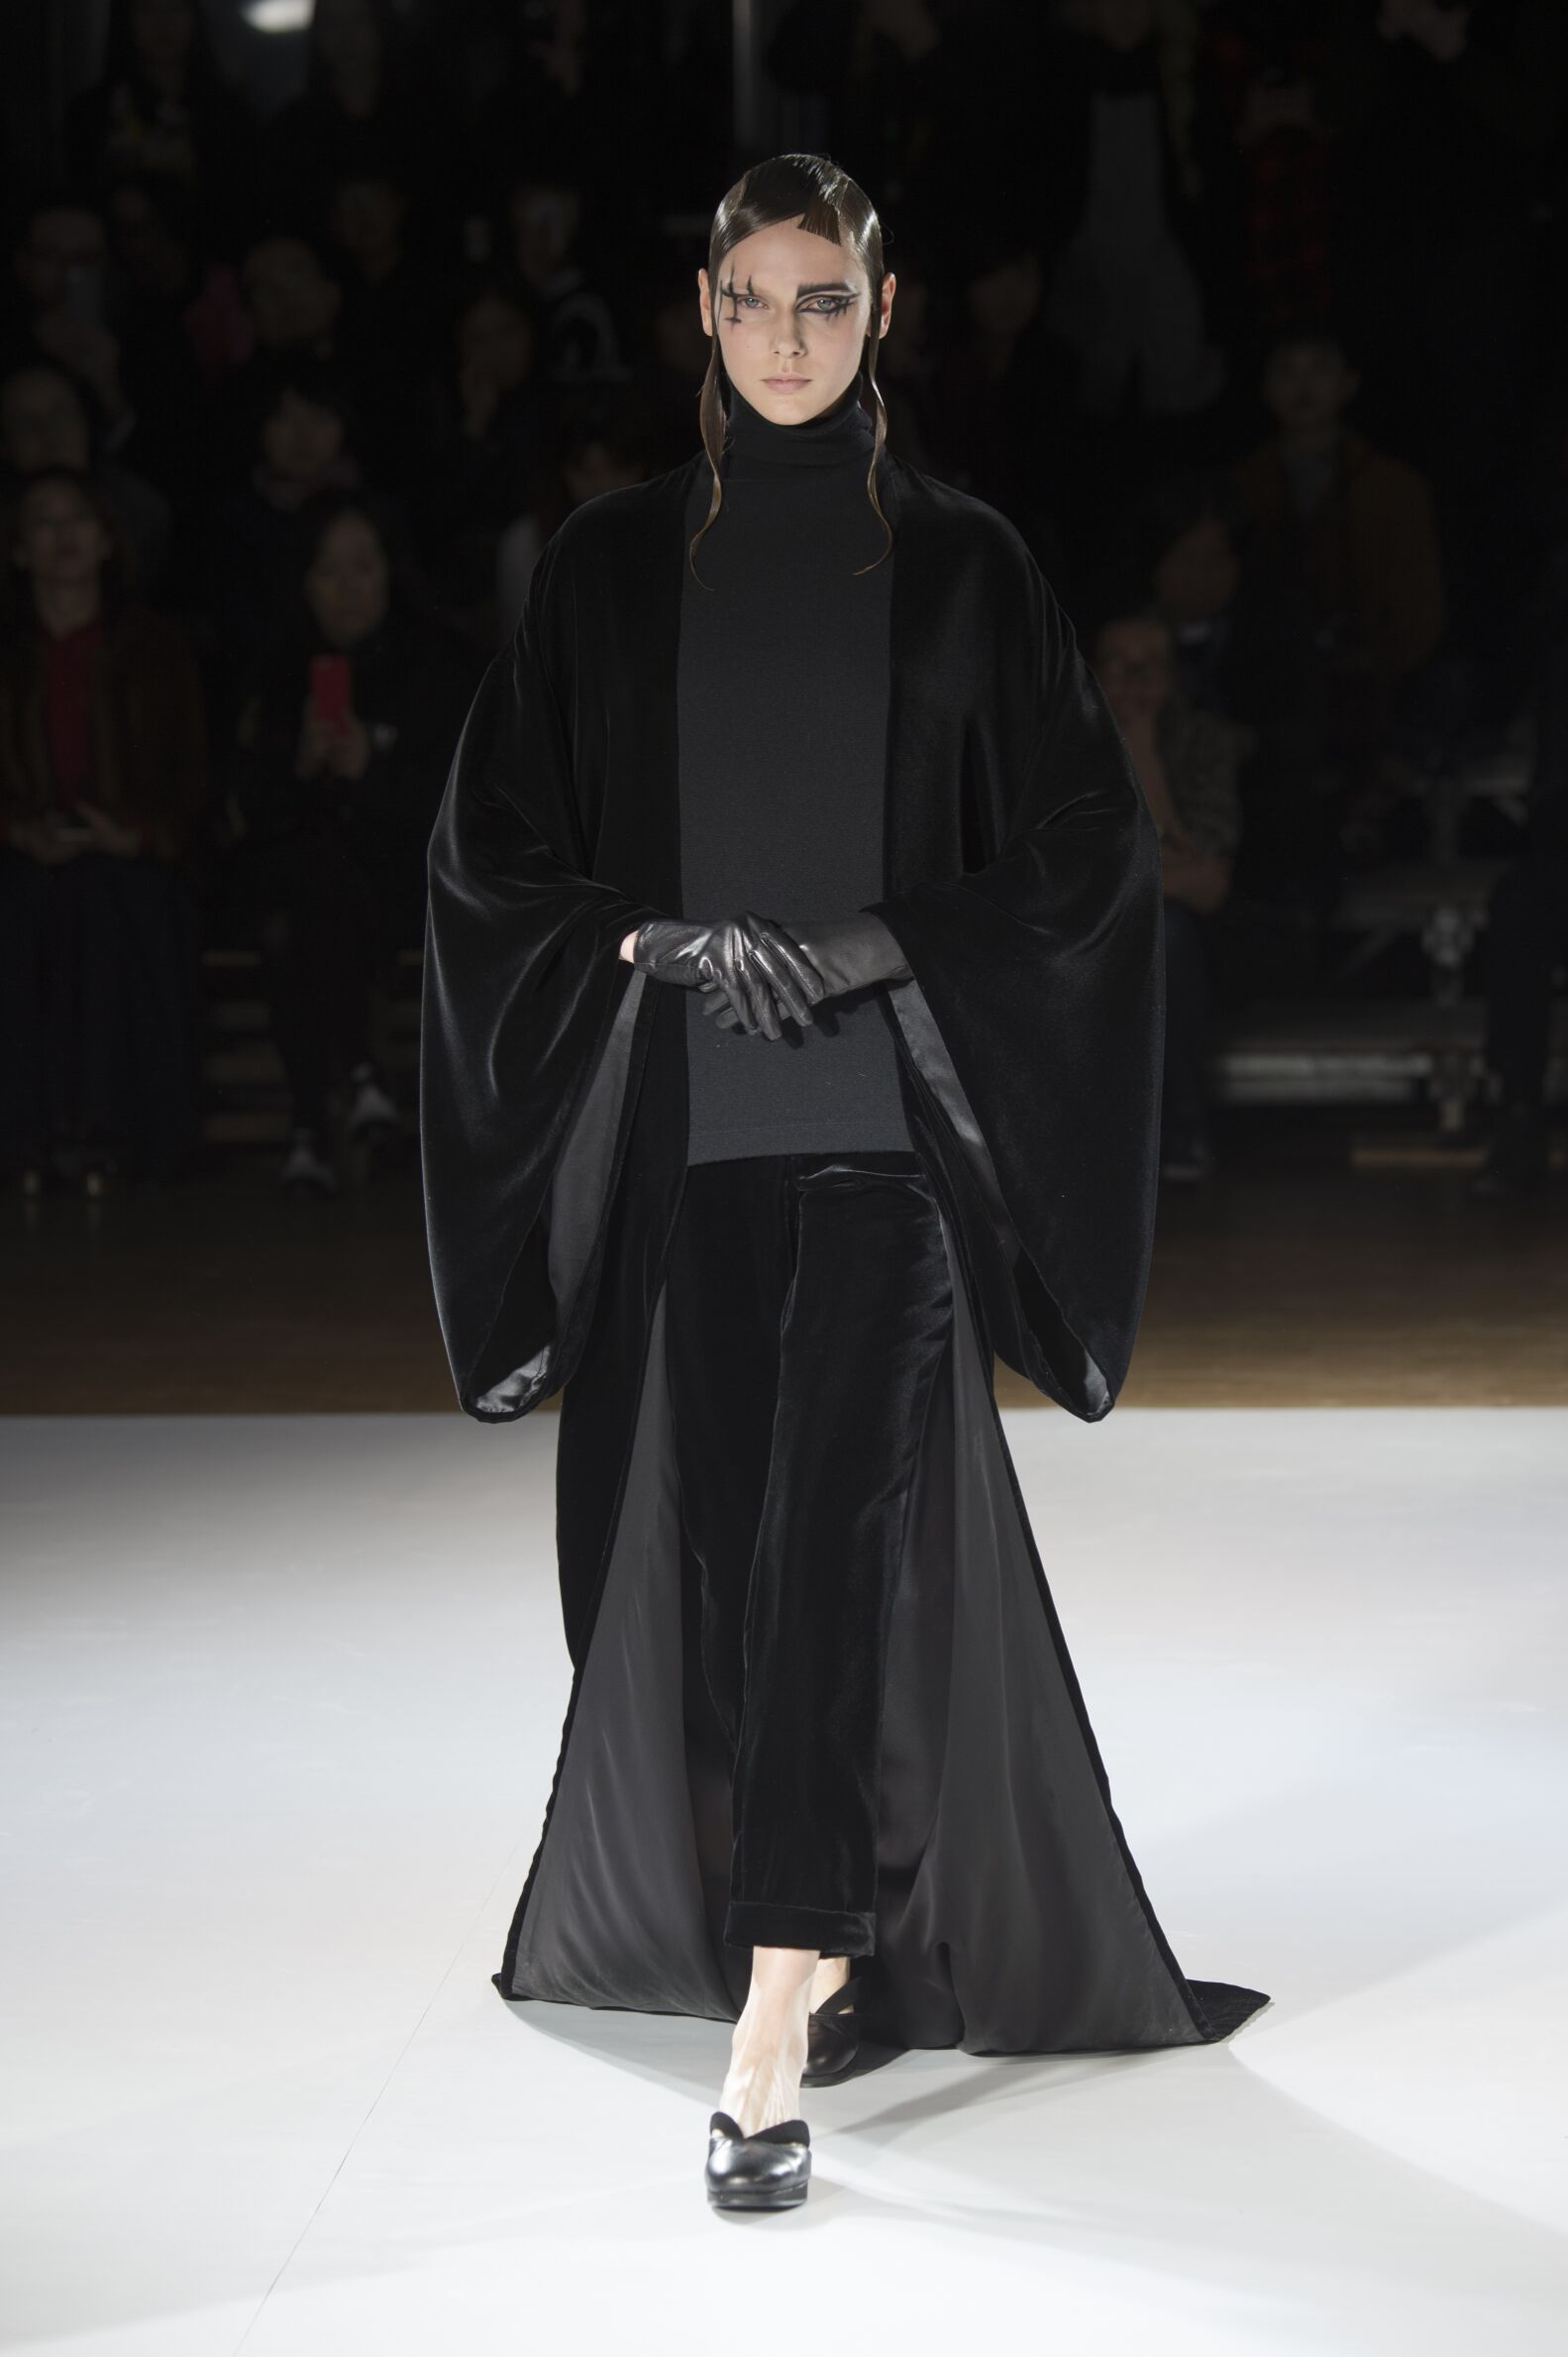 2015 Fashion Woman Model Yohji Yamamoto Collection Catwalk